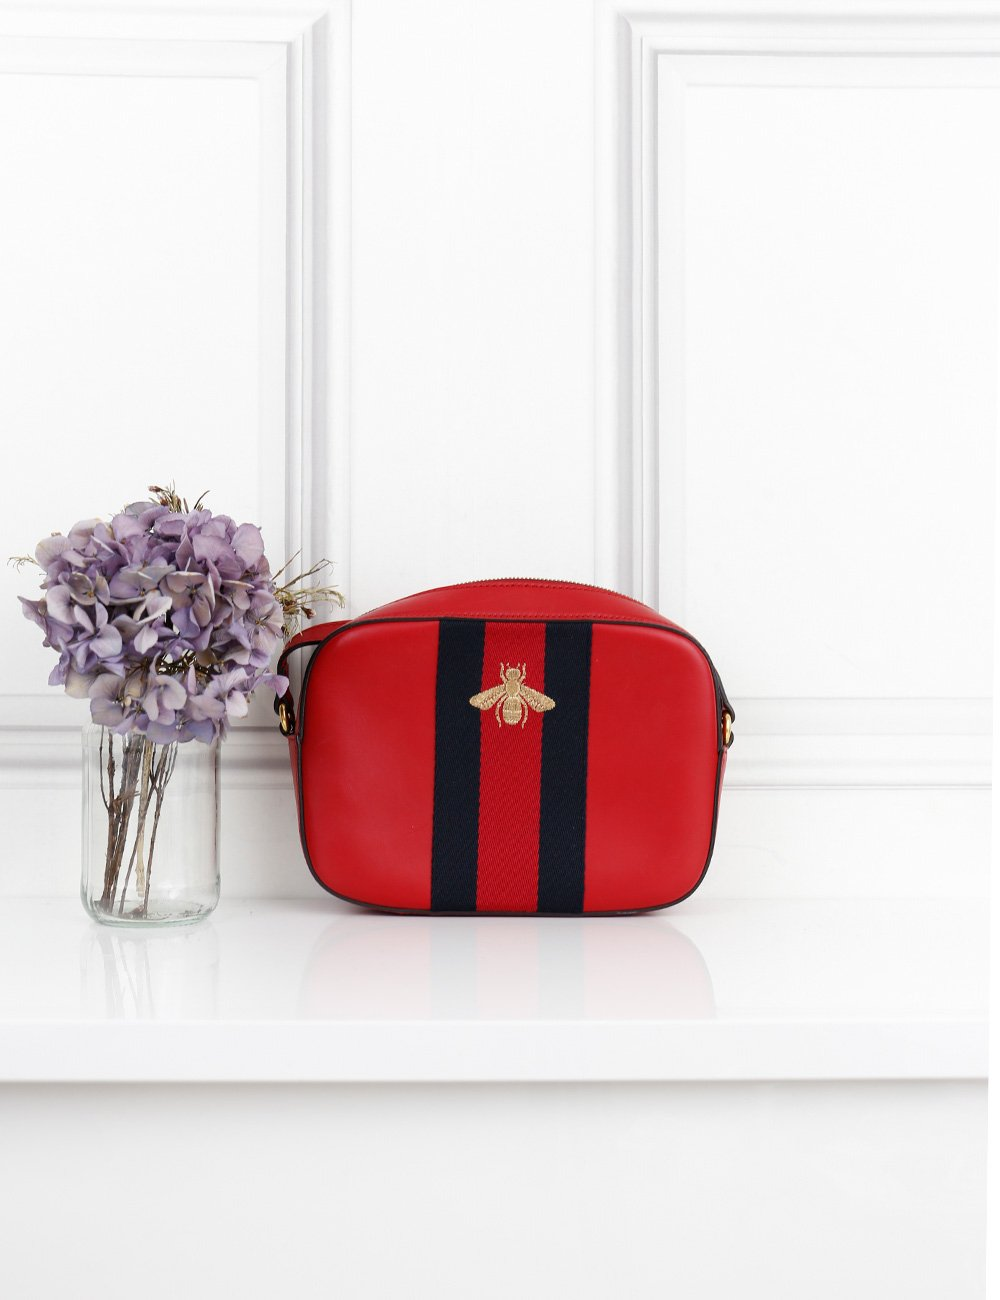 Gucci red cross body bag with gold bee motif- My Wardrobe Mistakes